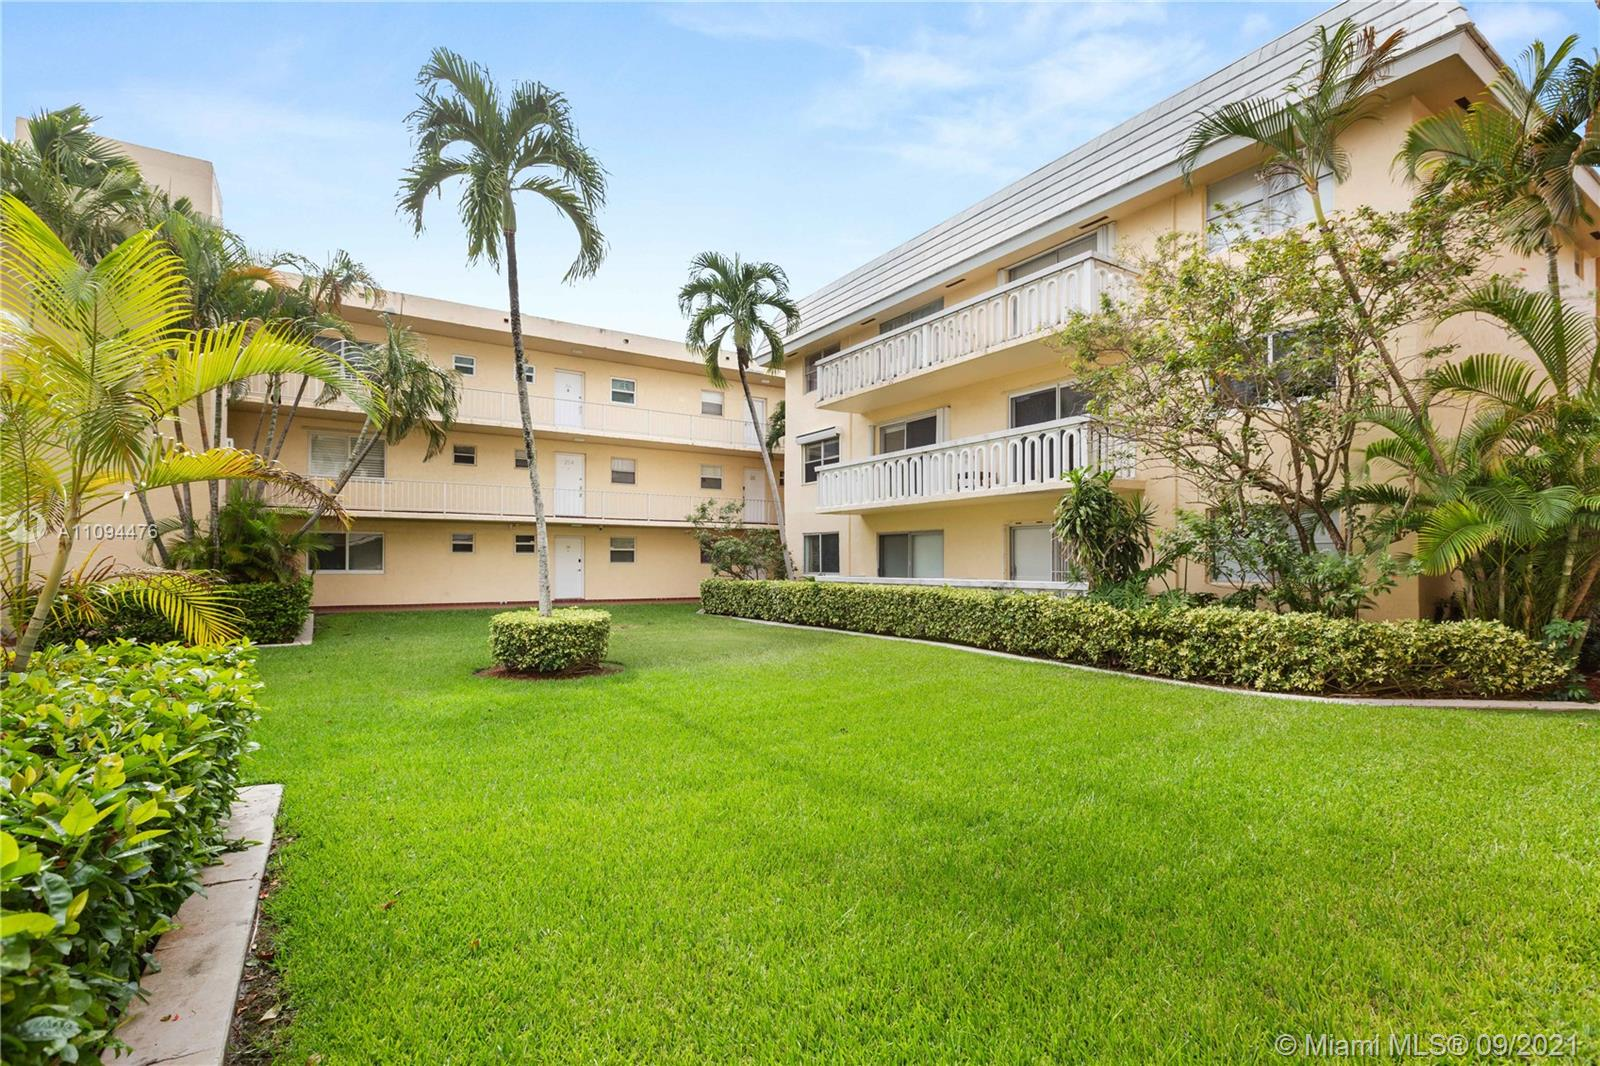 With beautiful views of the garden, this 1-bedroom, 1-bath condo on the Coral Gables Waterway is perfectly located to circumvent traffic.  Tile floors and large walk in closet, this is a great space.  The Pool sits next to the Waterway overlooking the boat slips, surrounded by great patio area.  Private parking and priced to sell.  Boat slip could be an option if available to rent.